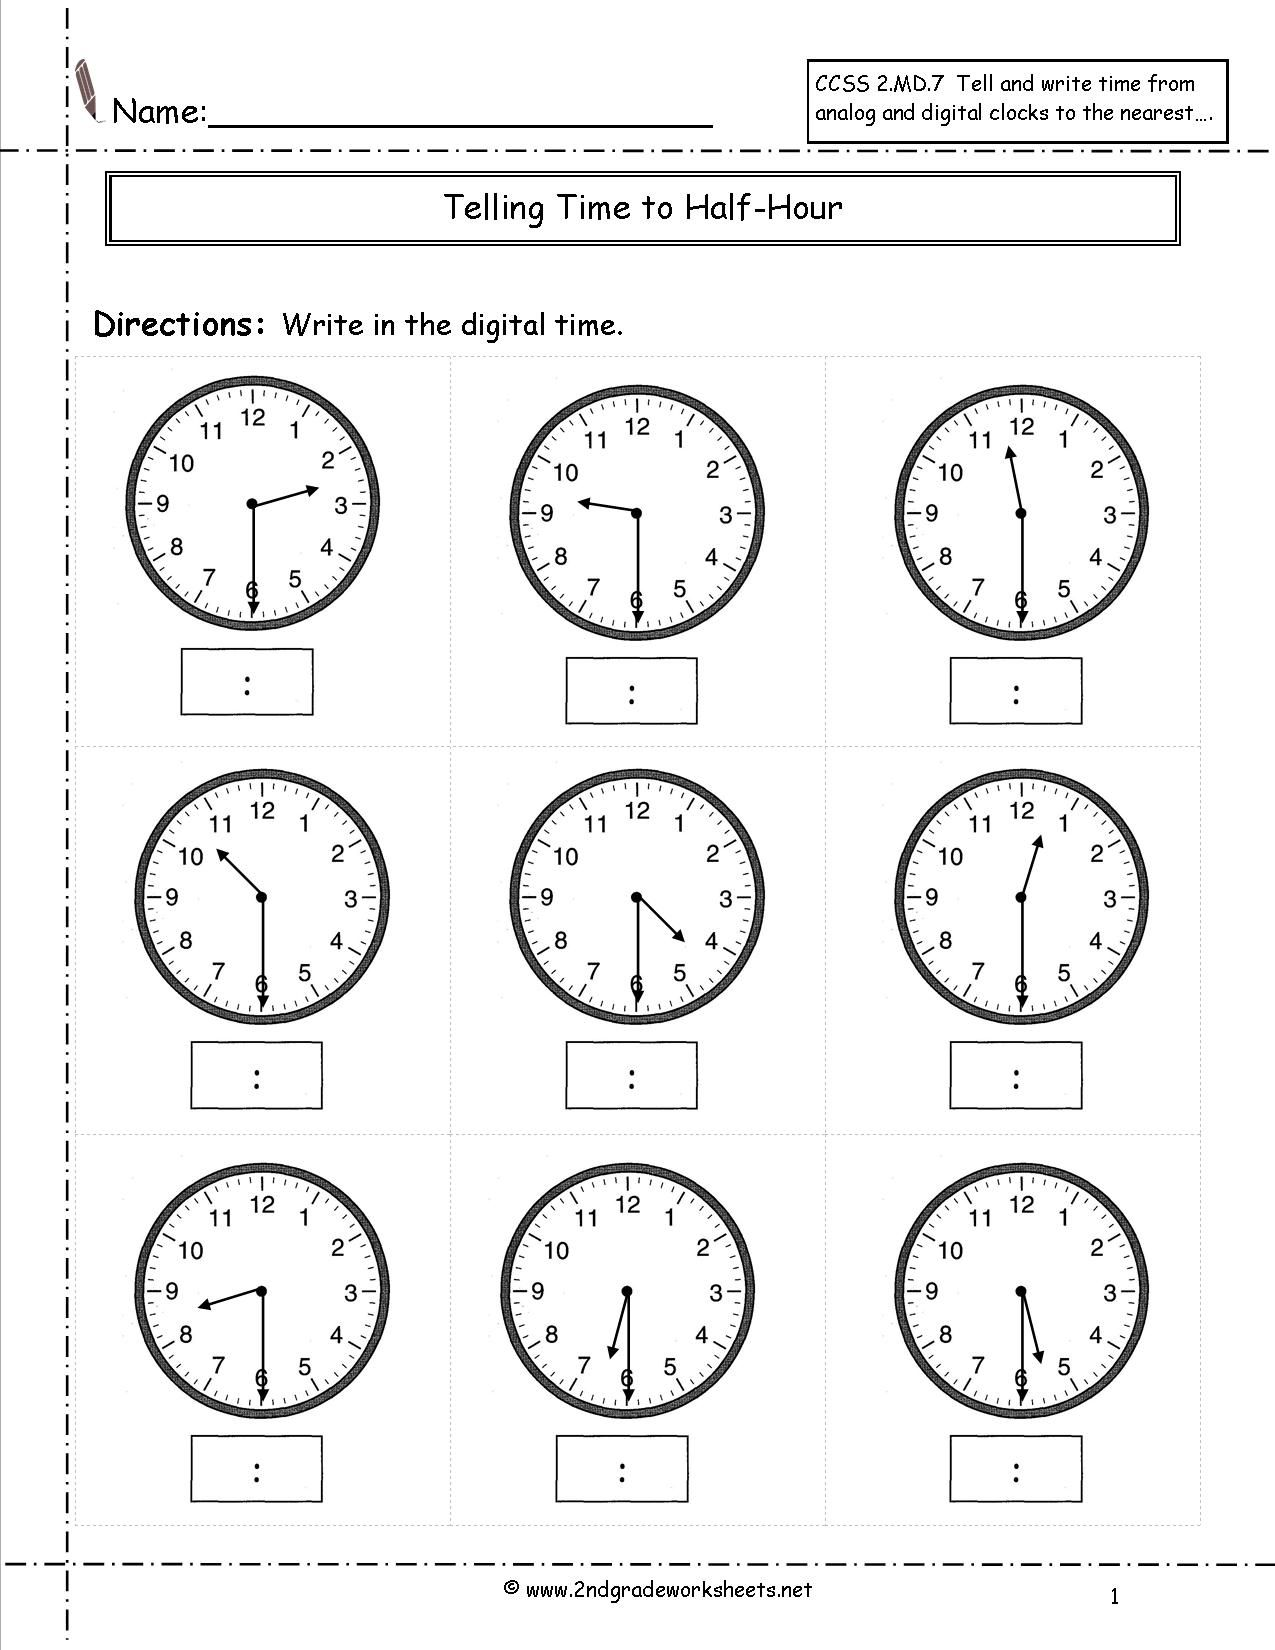 Www 2ndgradeworksheets Net Tellingtime Timetohalfhour Jpg With